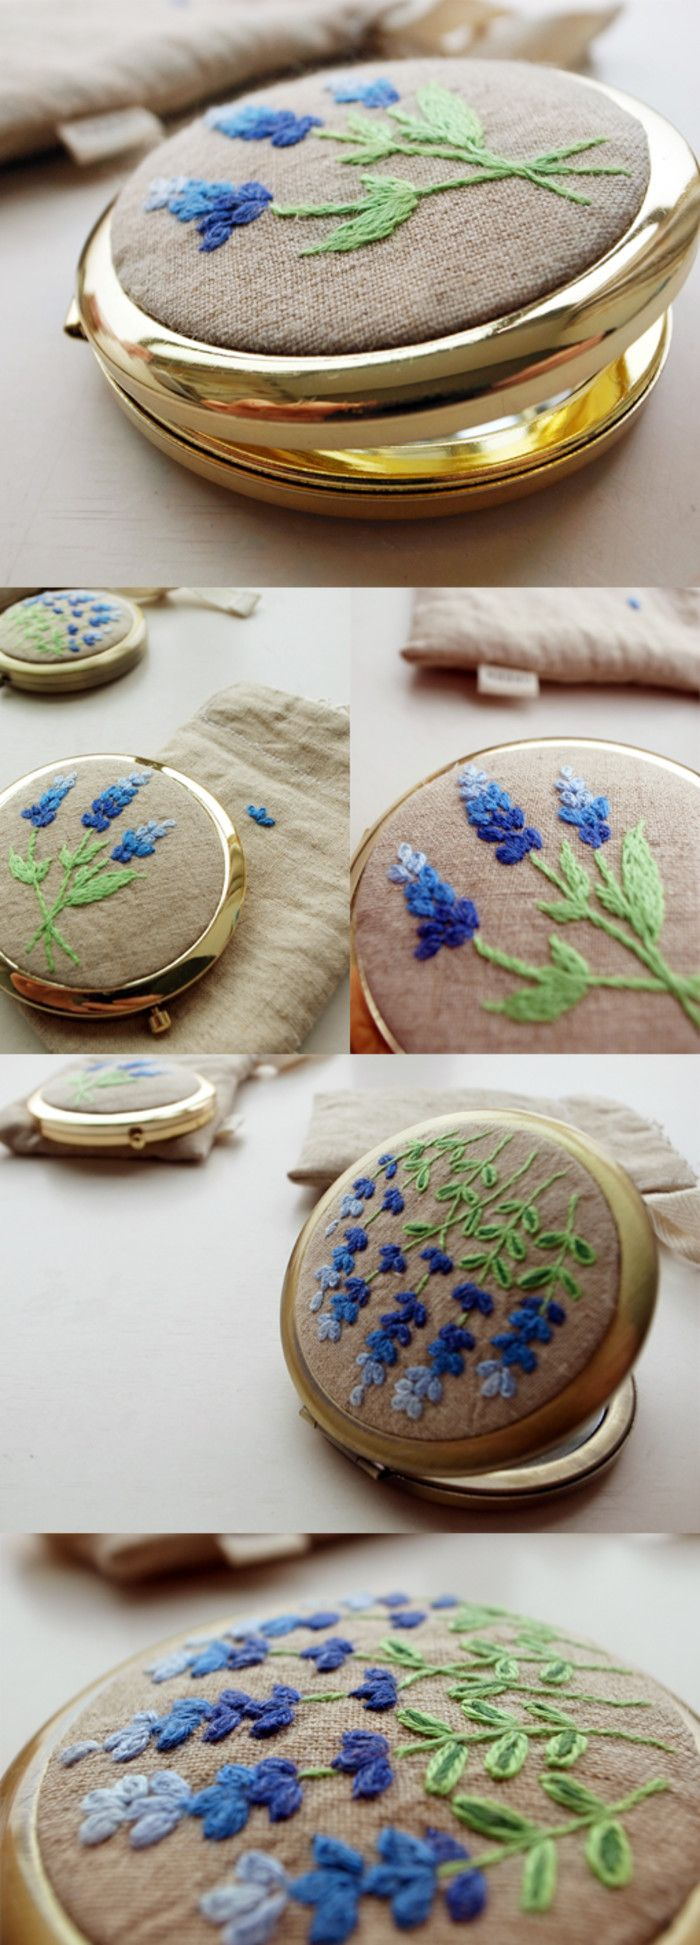 Embroidered compact.